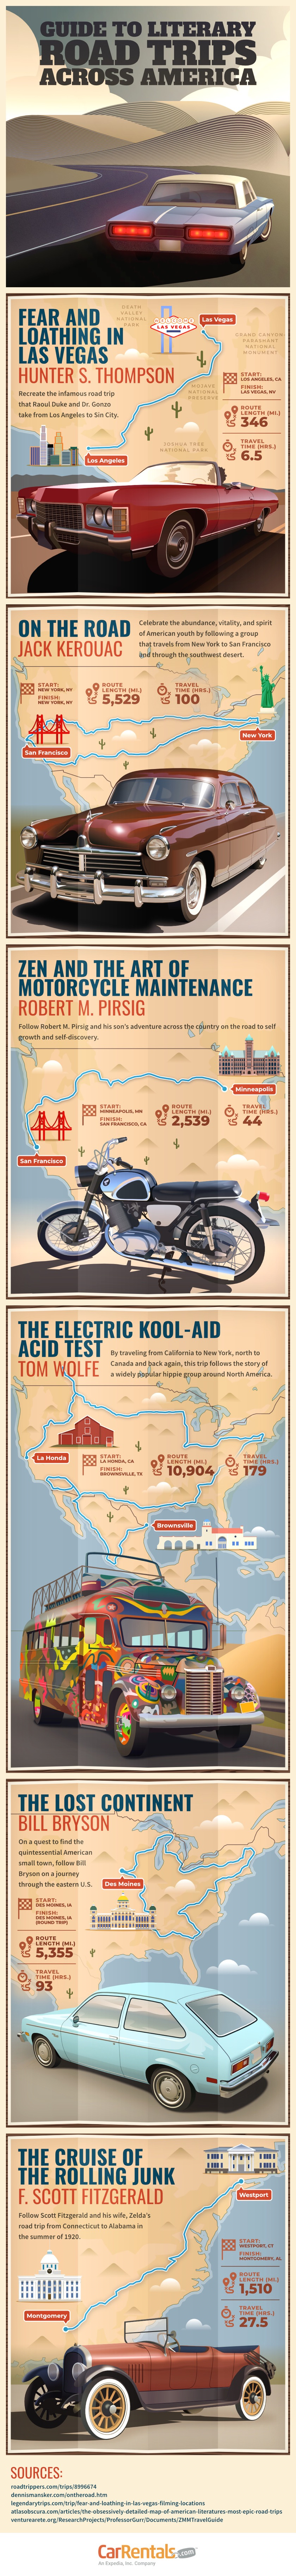 A complete guide to literary trips across the US #infographic